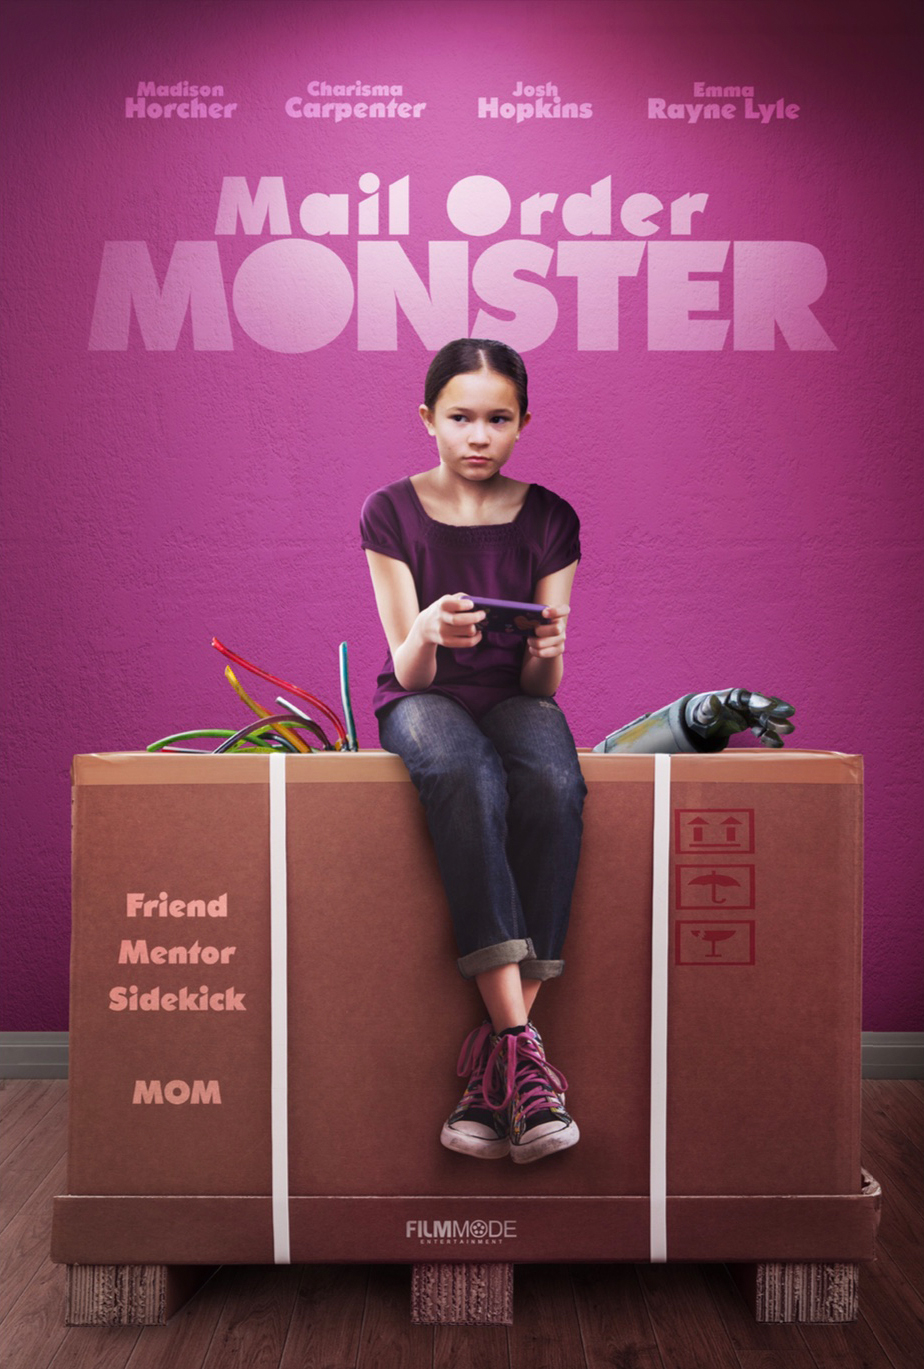 mail order monster 2018 imdb